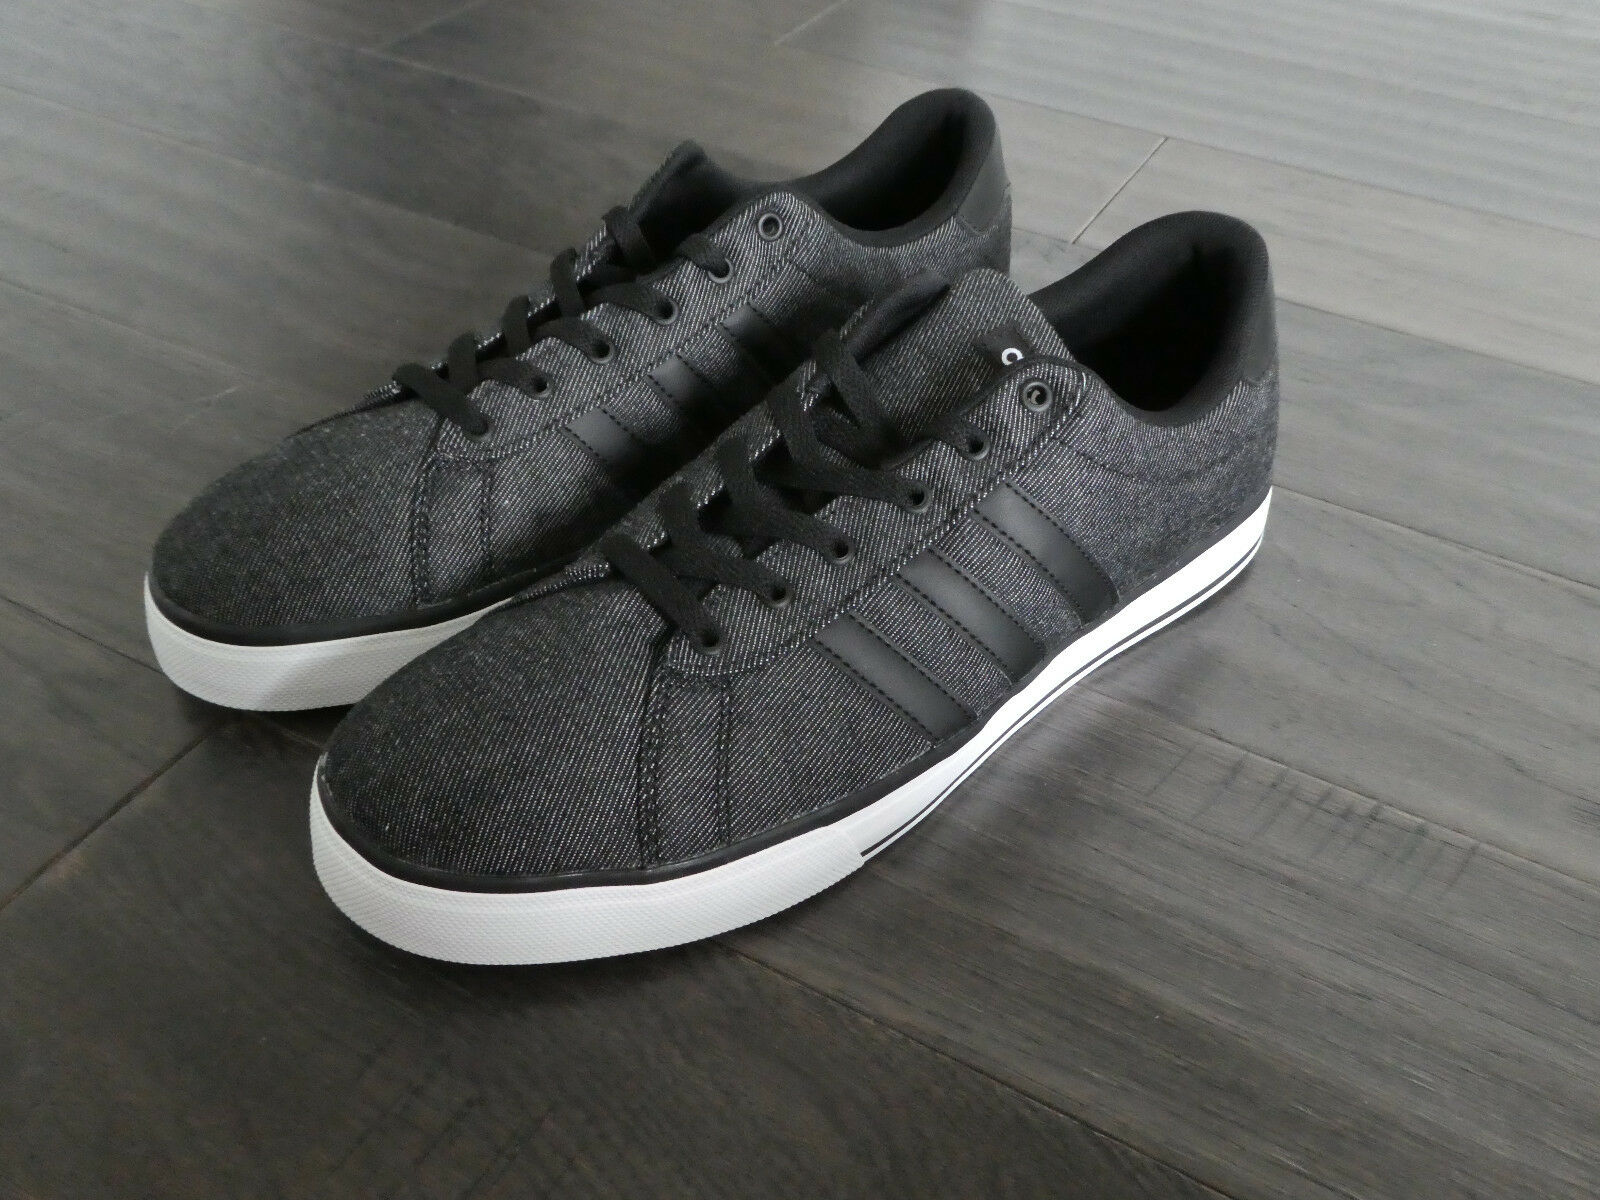 Adidas Neo SE Daily Vulc men's shoes sneakers new F76263 black